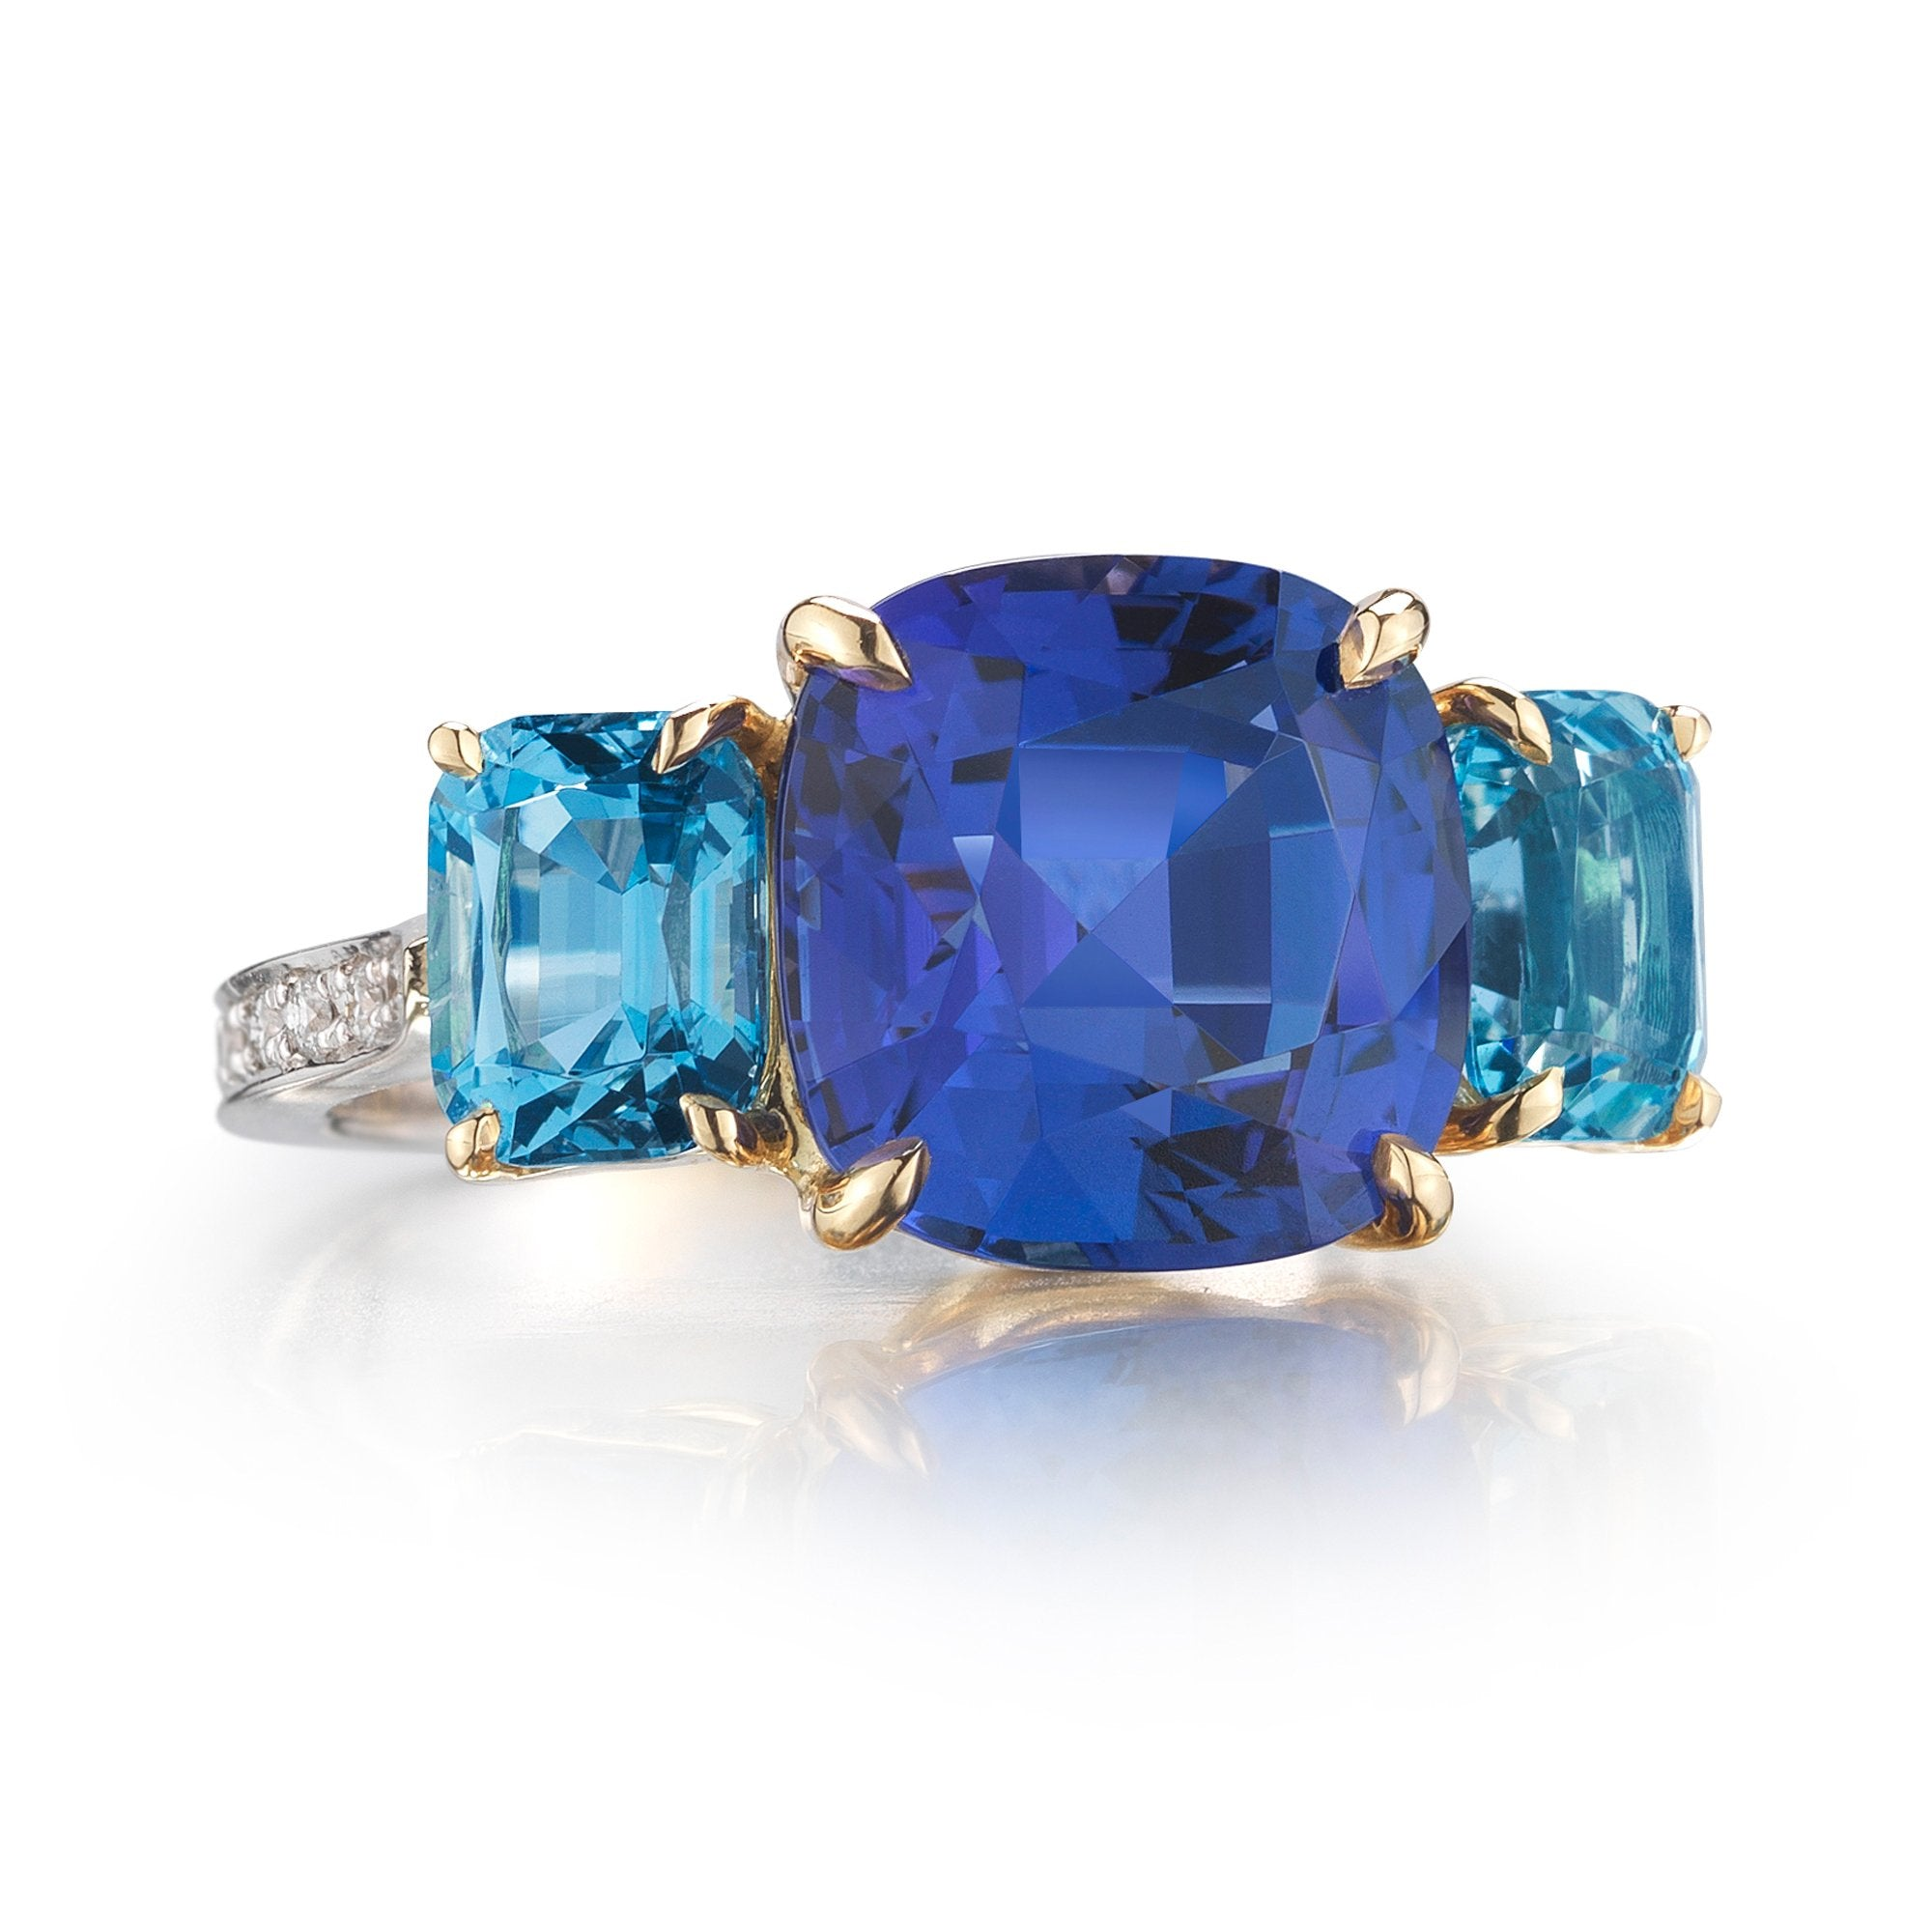 18kt White Gold Cushion-Cut Tanzanite And Aquamarine Ring - Paolo Costagli